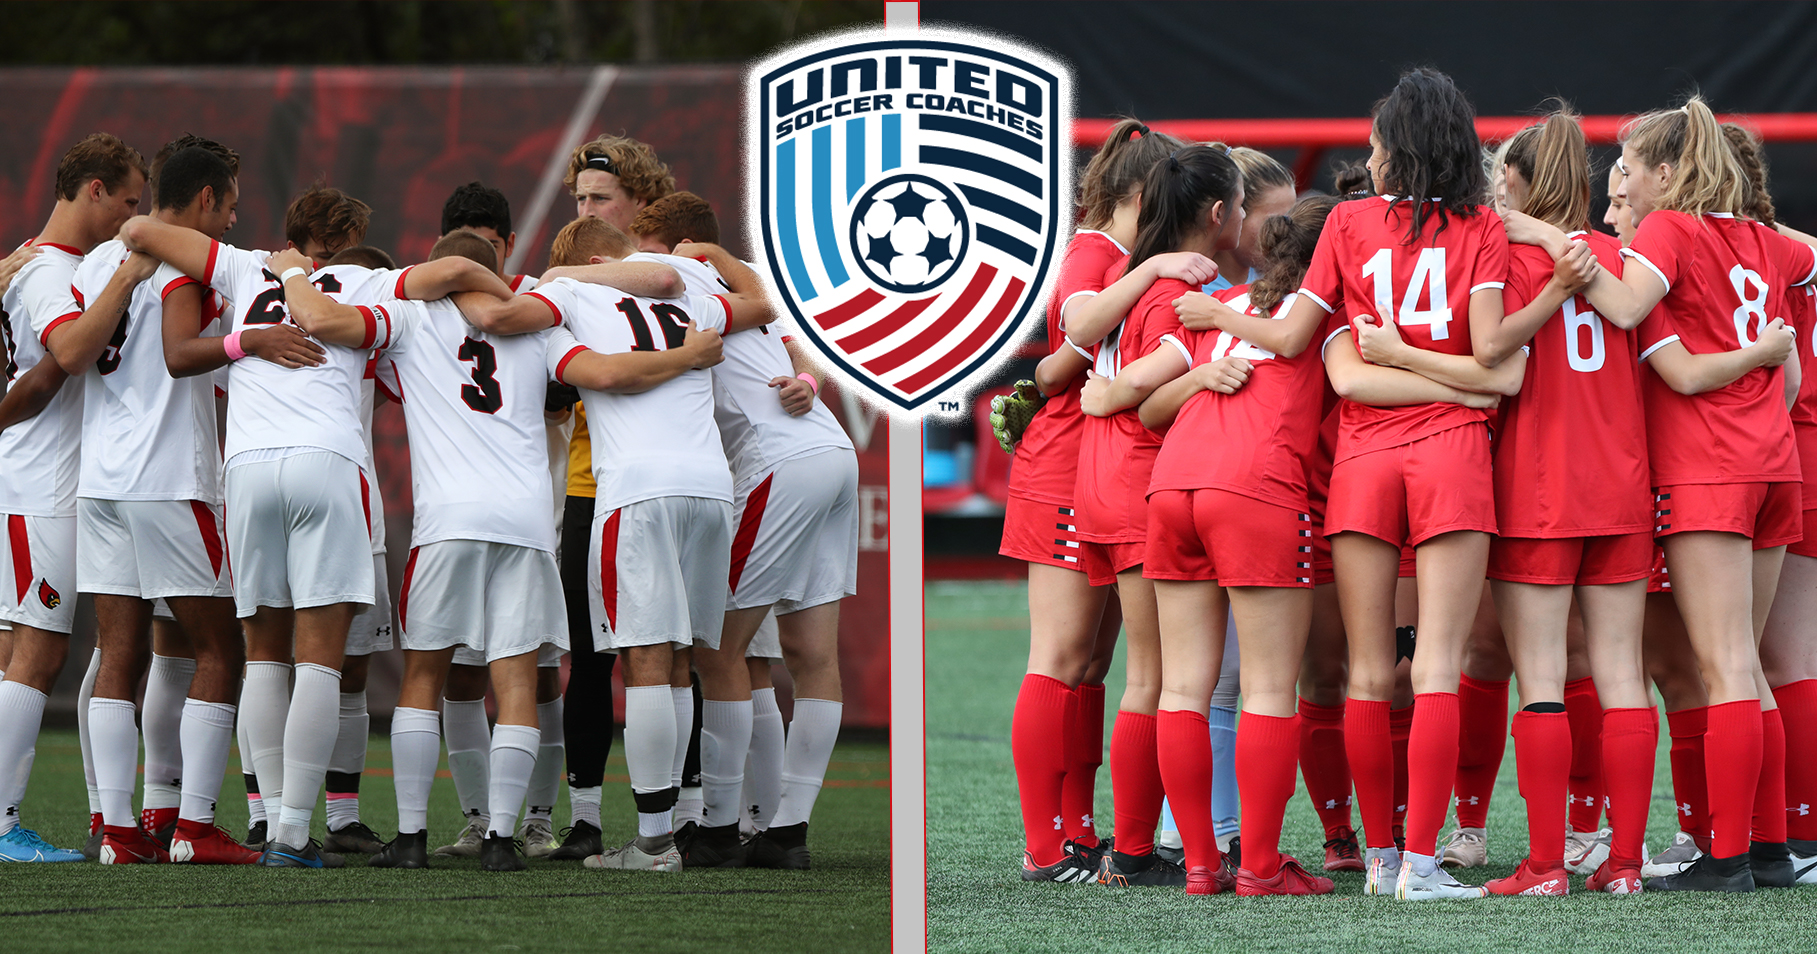 Cardinals Garner United Soccer Coaches Academic Awards